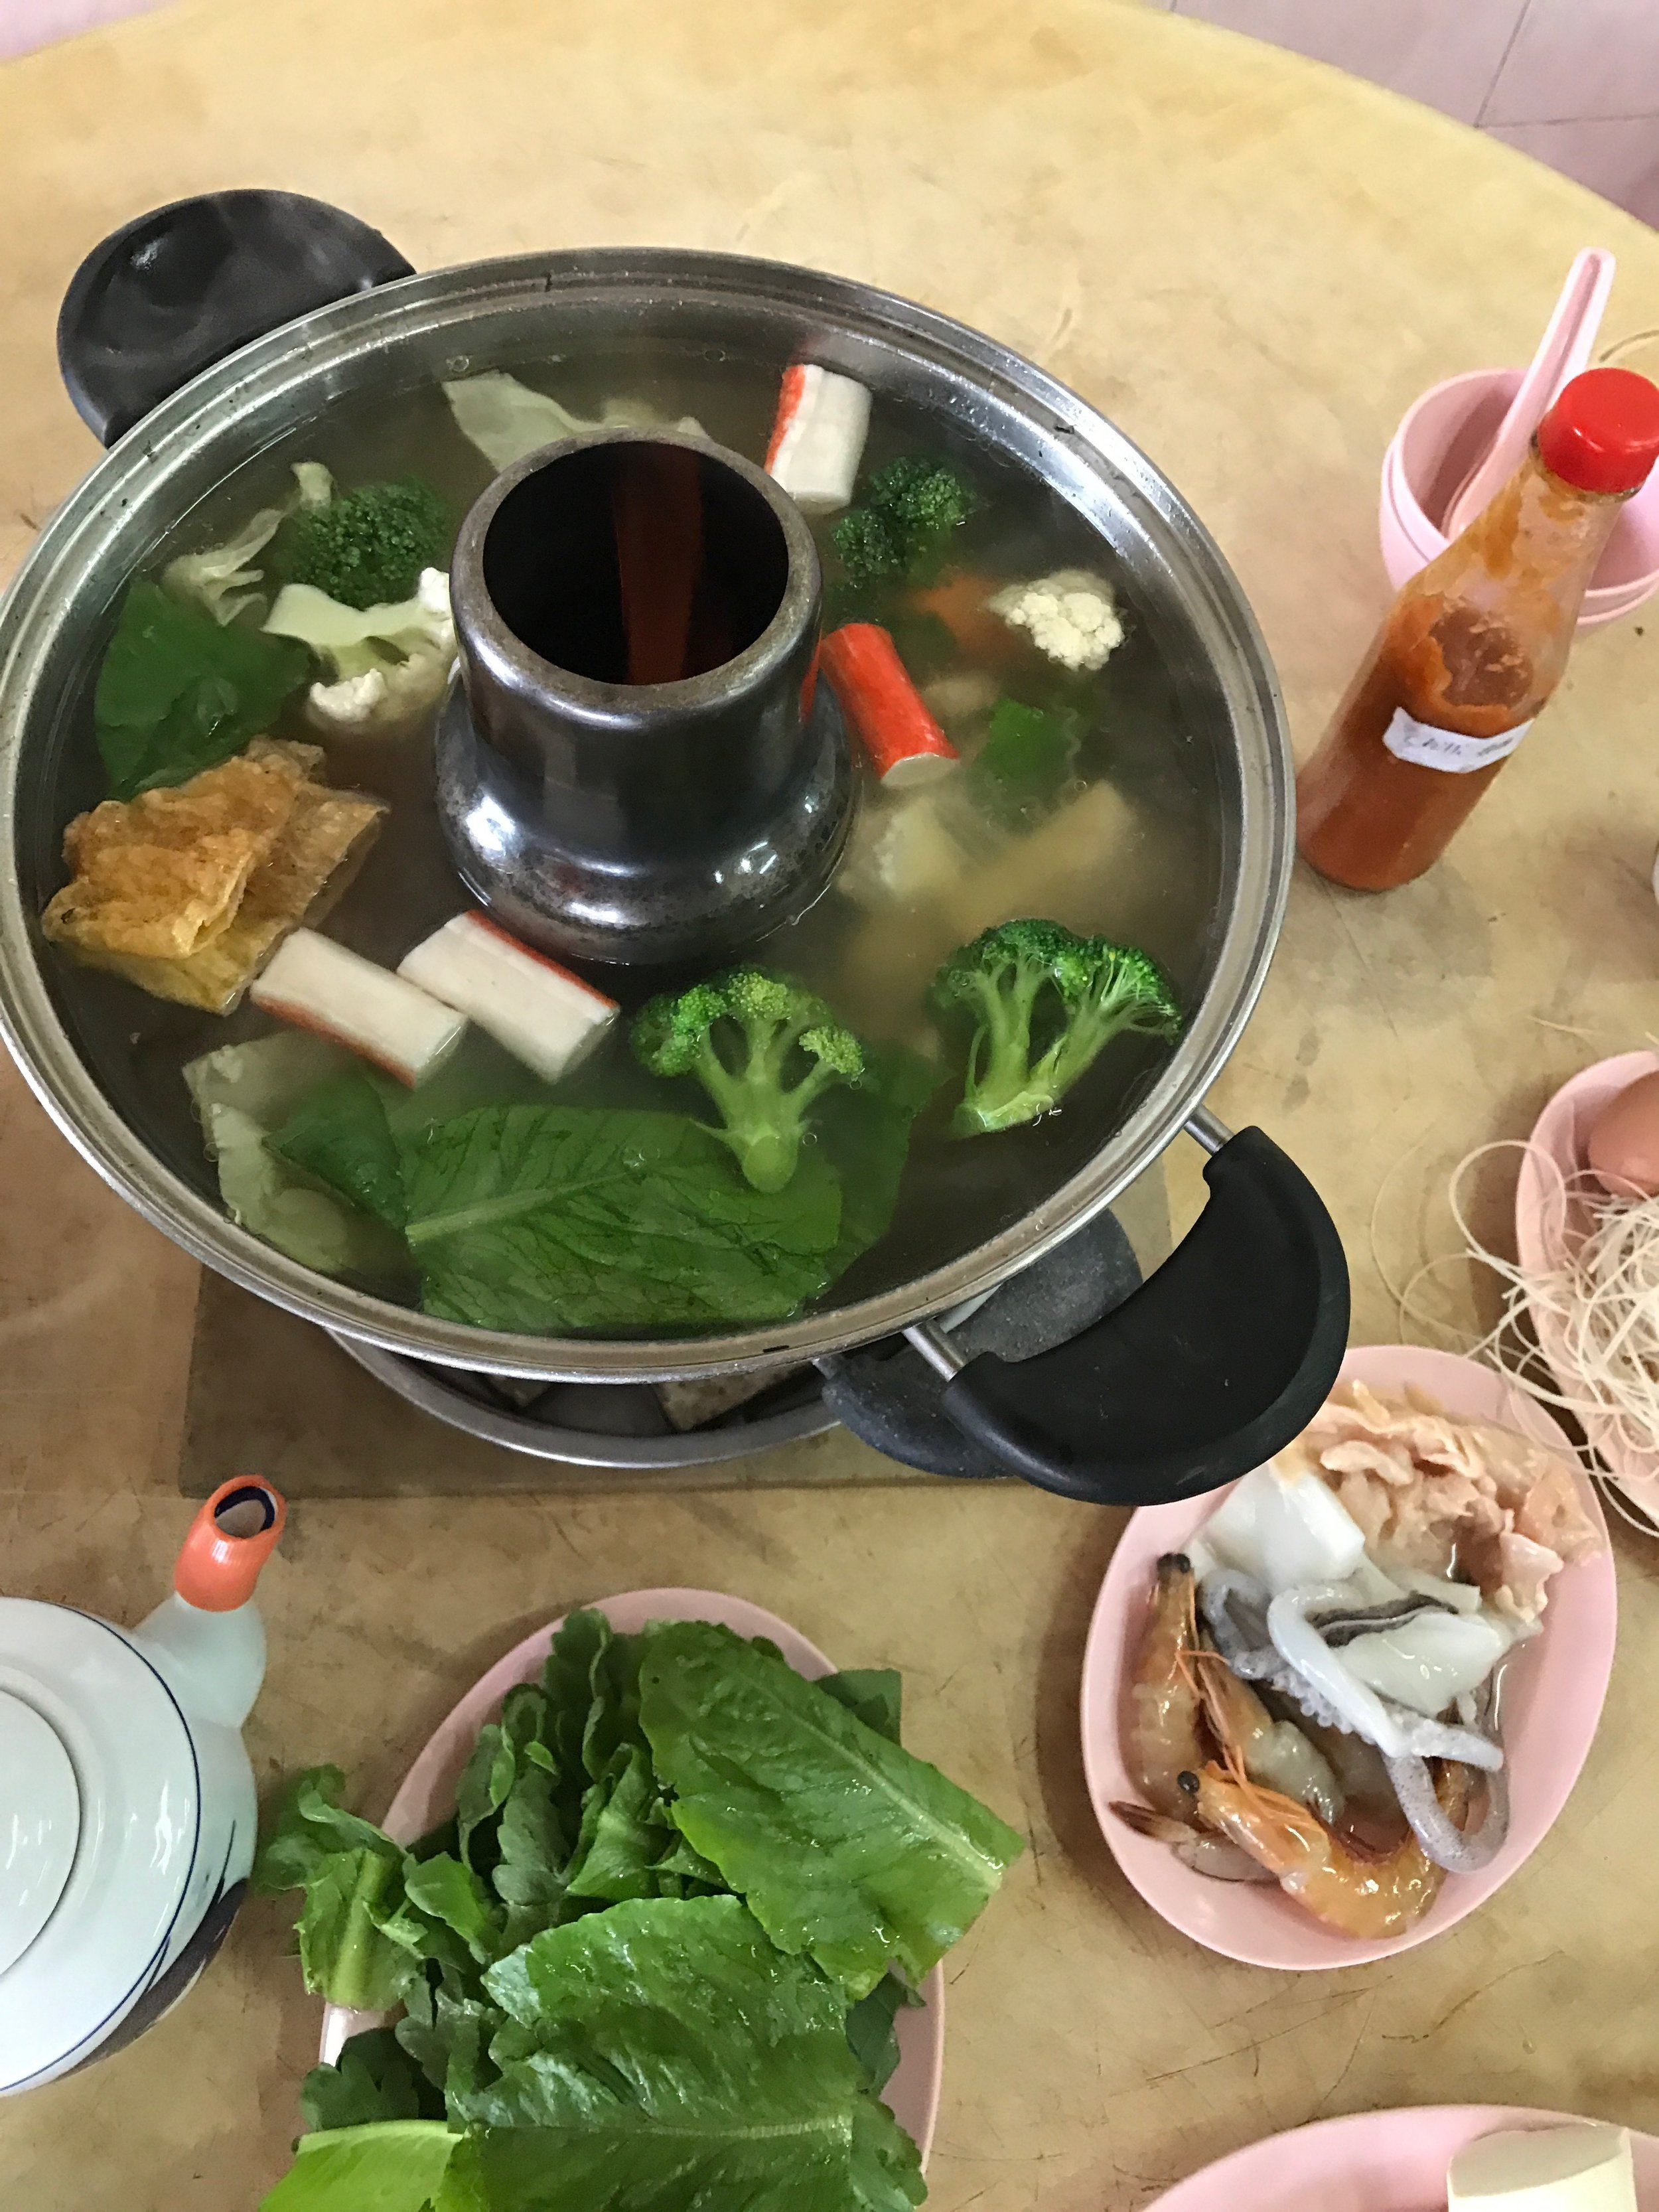 """""""Steamboat"""" - fresh veggies, noodles, and meat (chicken, prawns, squid, etc) which you add to the boiling water in the middle to make a kind of soup. Delicious. The jellyfish was omitted."""